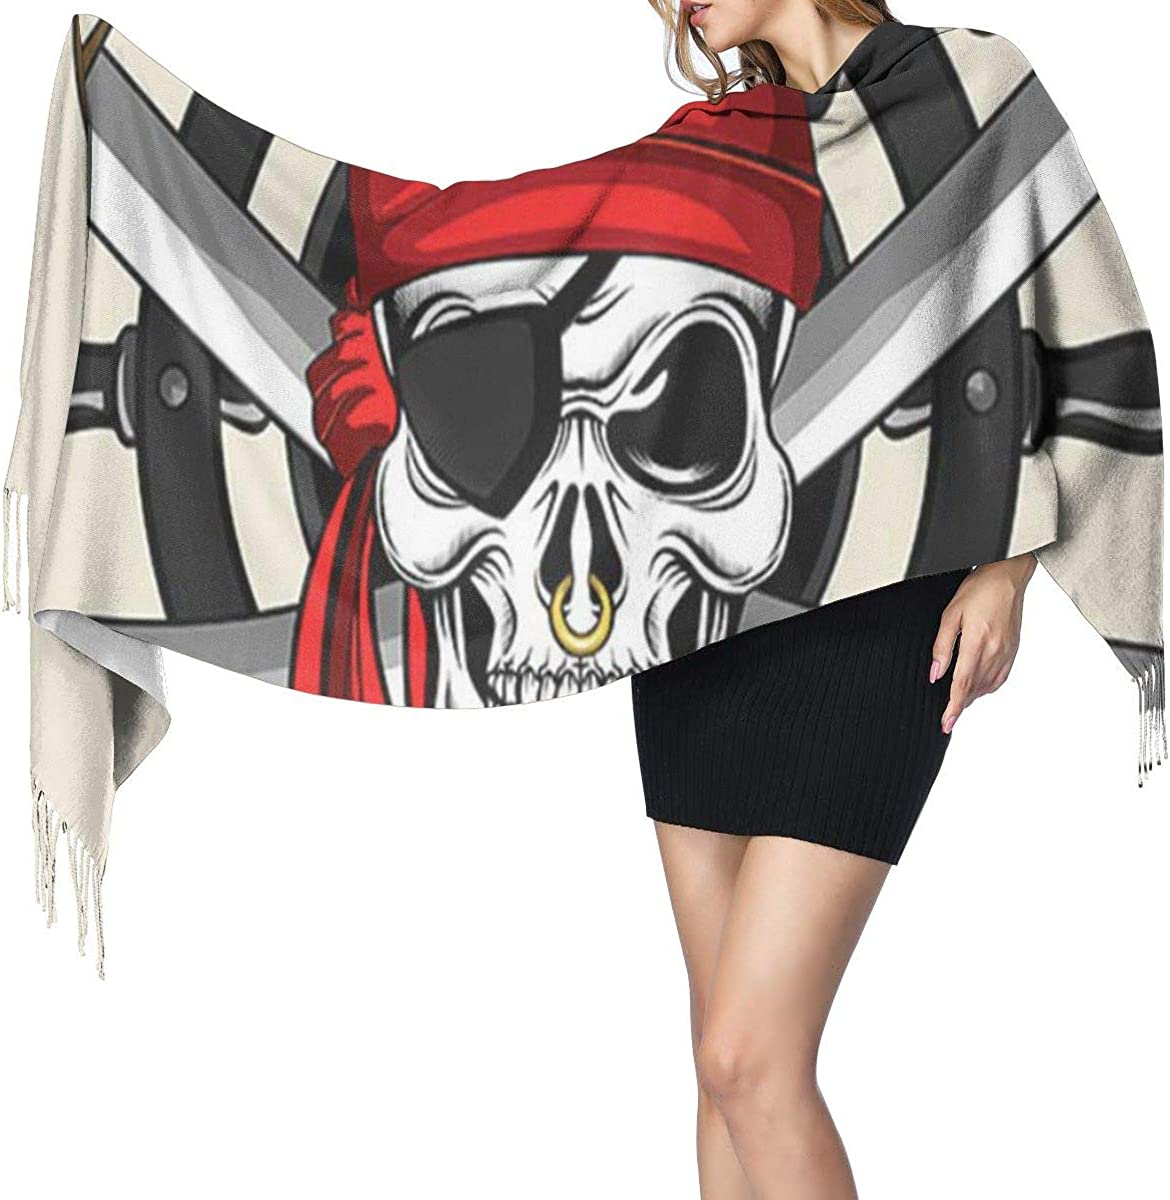 Fashion Lady Shawls,Comfortable Warm Winter Scarfs Soft Cashmere Scarf For Women Cap Black Caribbean Pirate Skull And Wheel Red Bandana